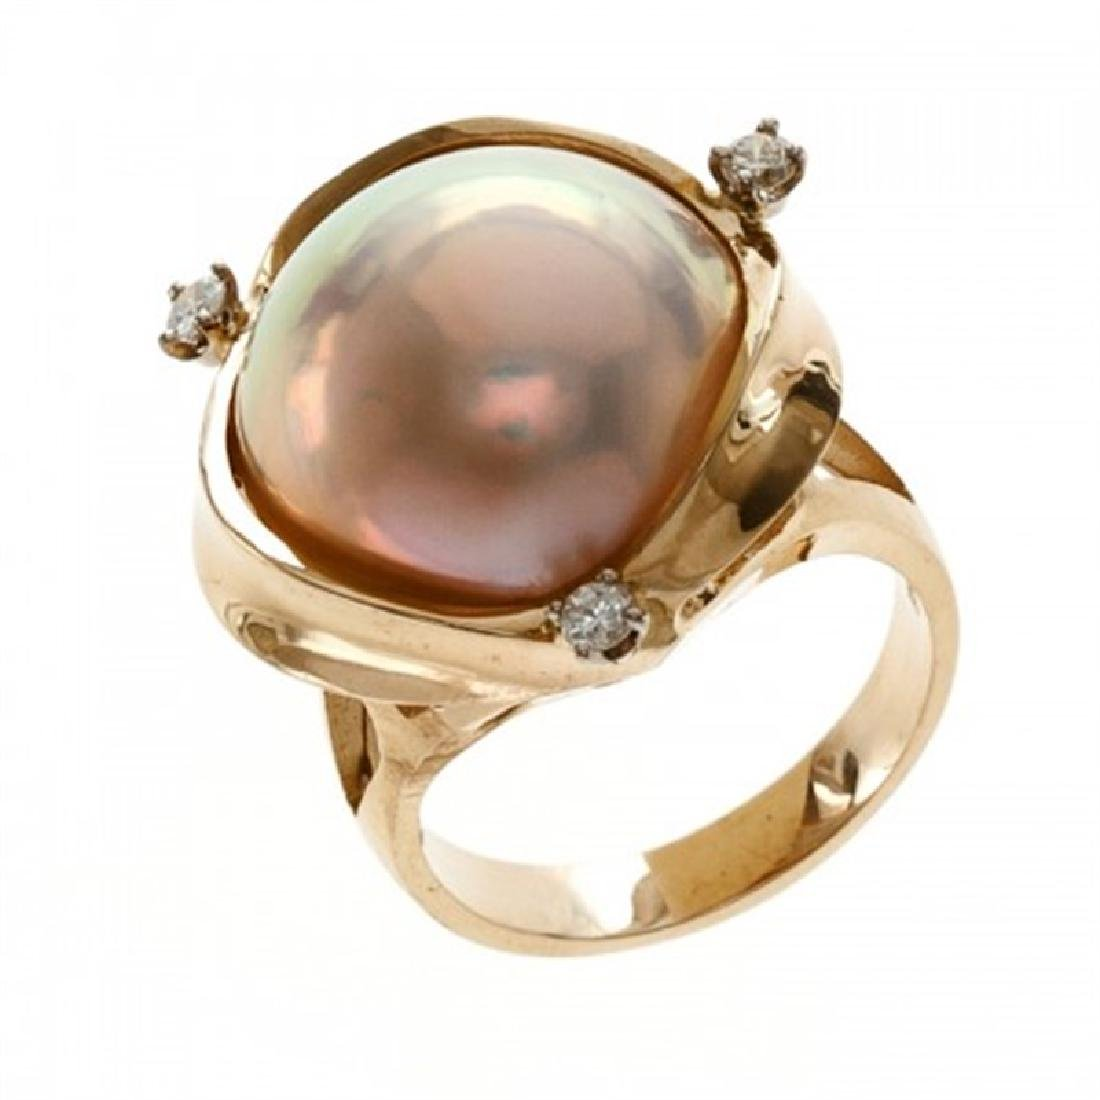 16.0-16.5mm Mabe Pearl Ring with Diamonds